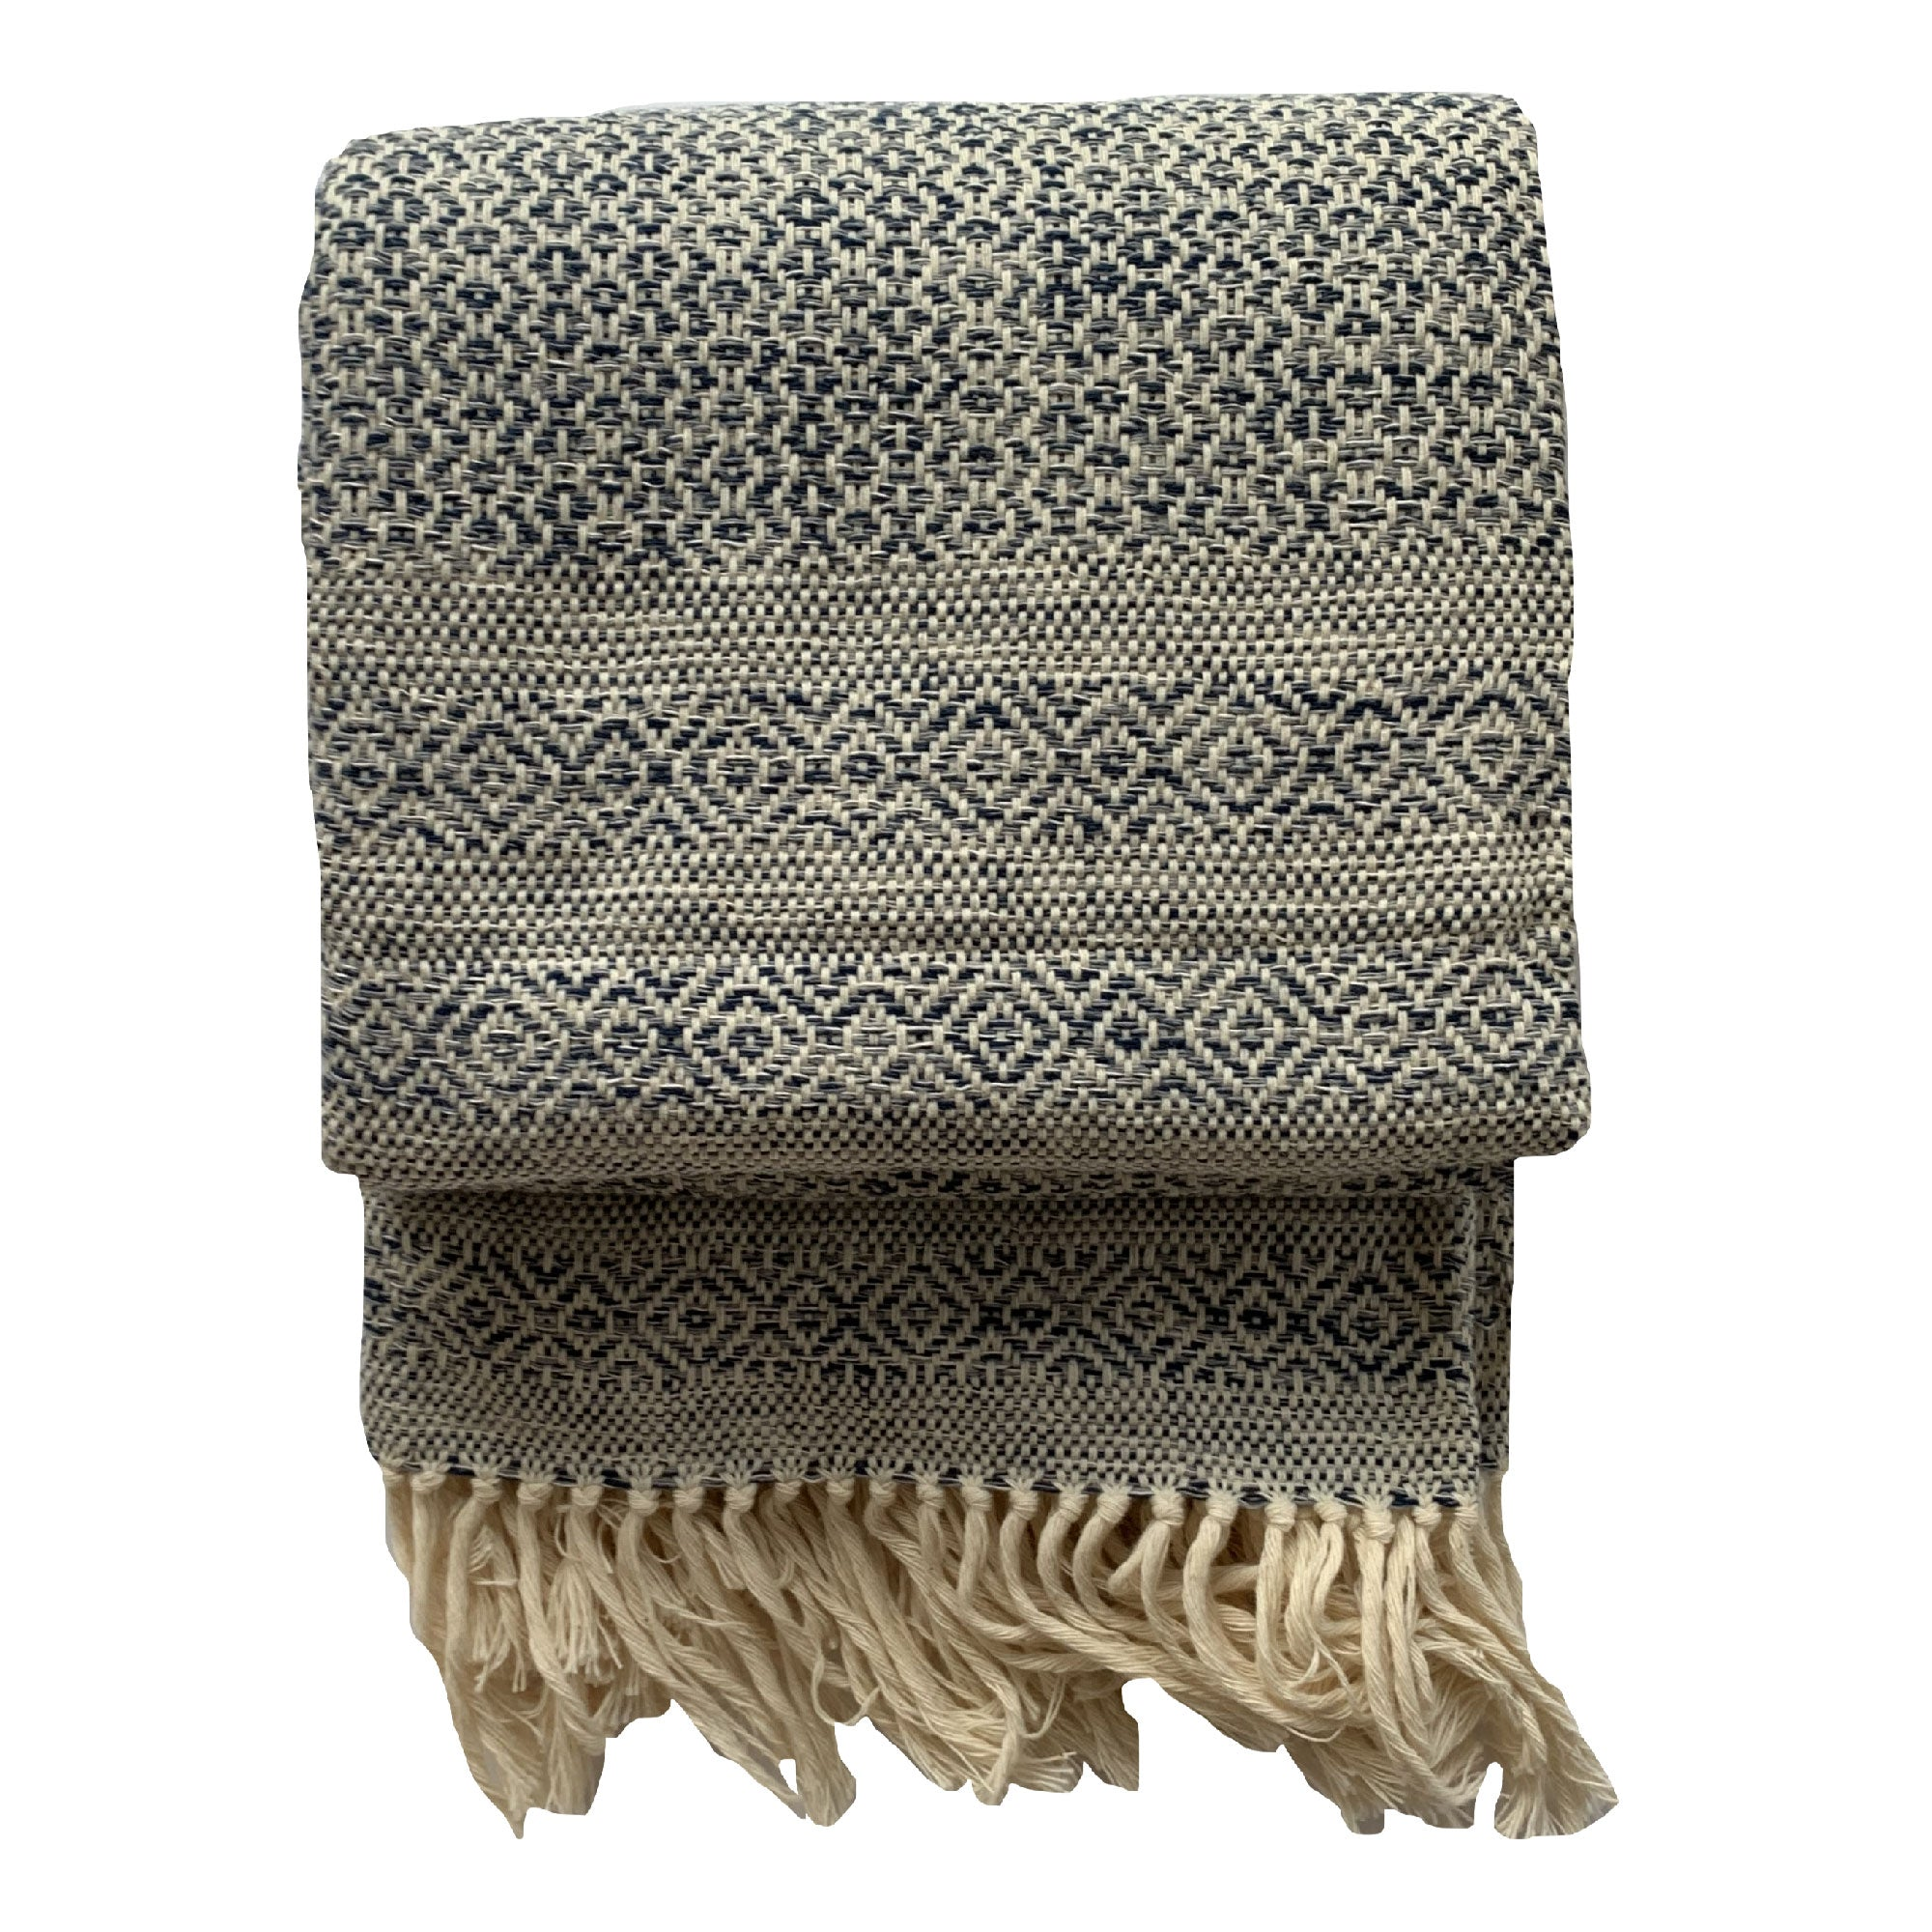 Handmade cotton mixed birdseye throw handmade by Living Threads Co. artisans in Nicaragua in Deep Sea